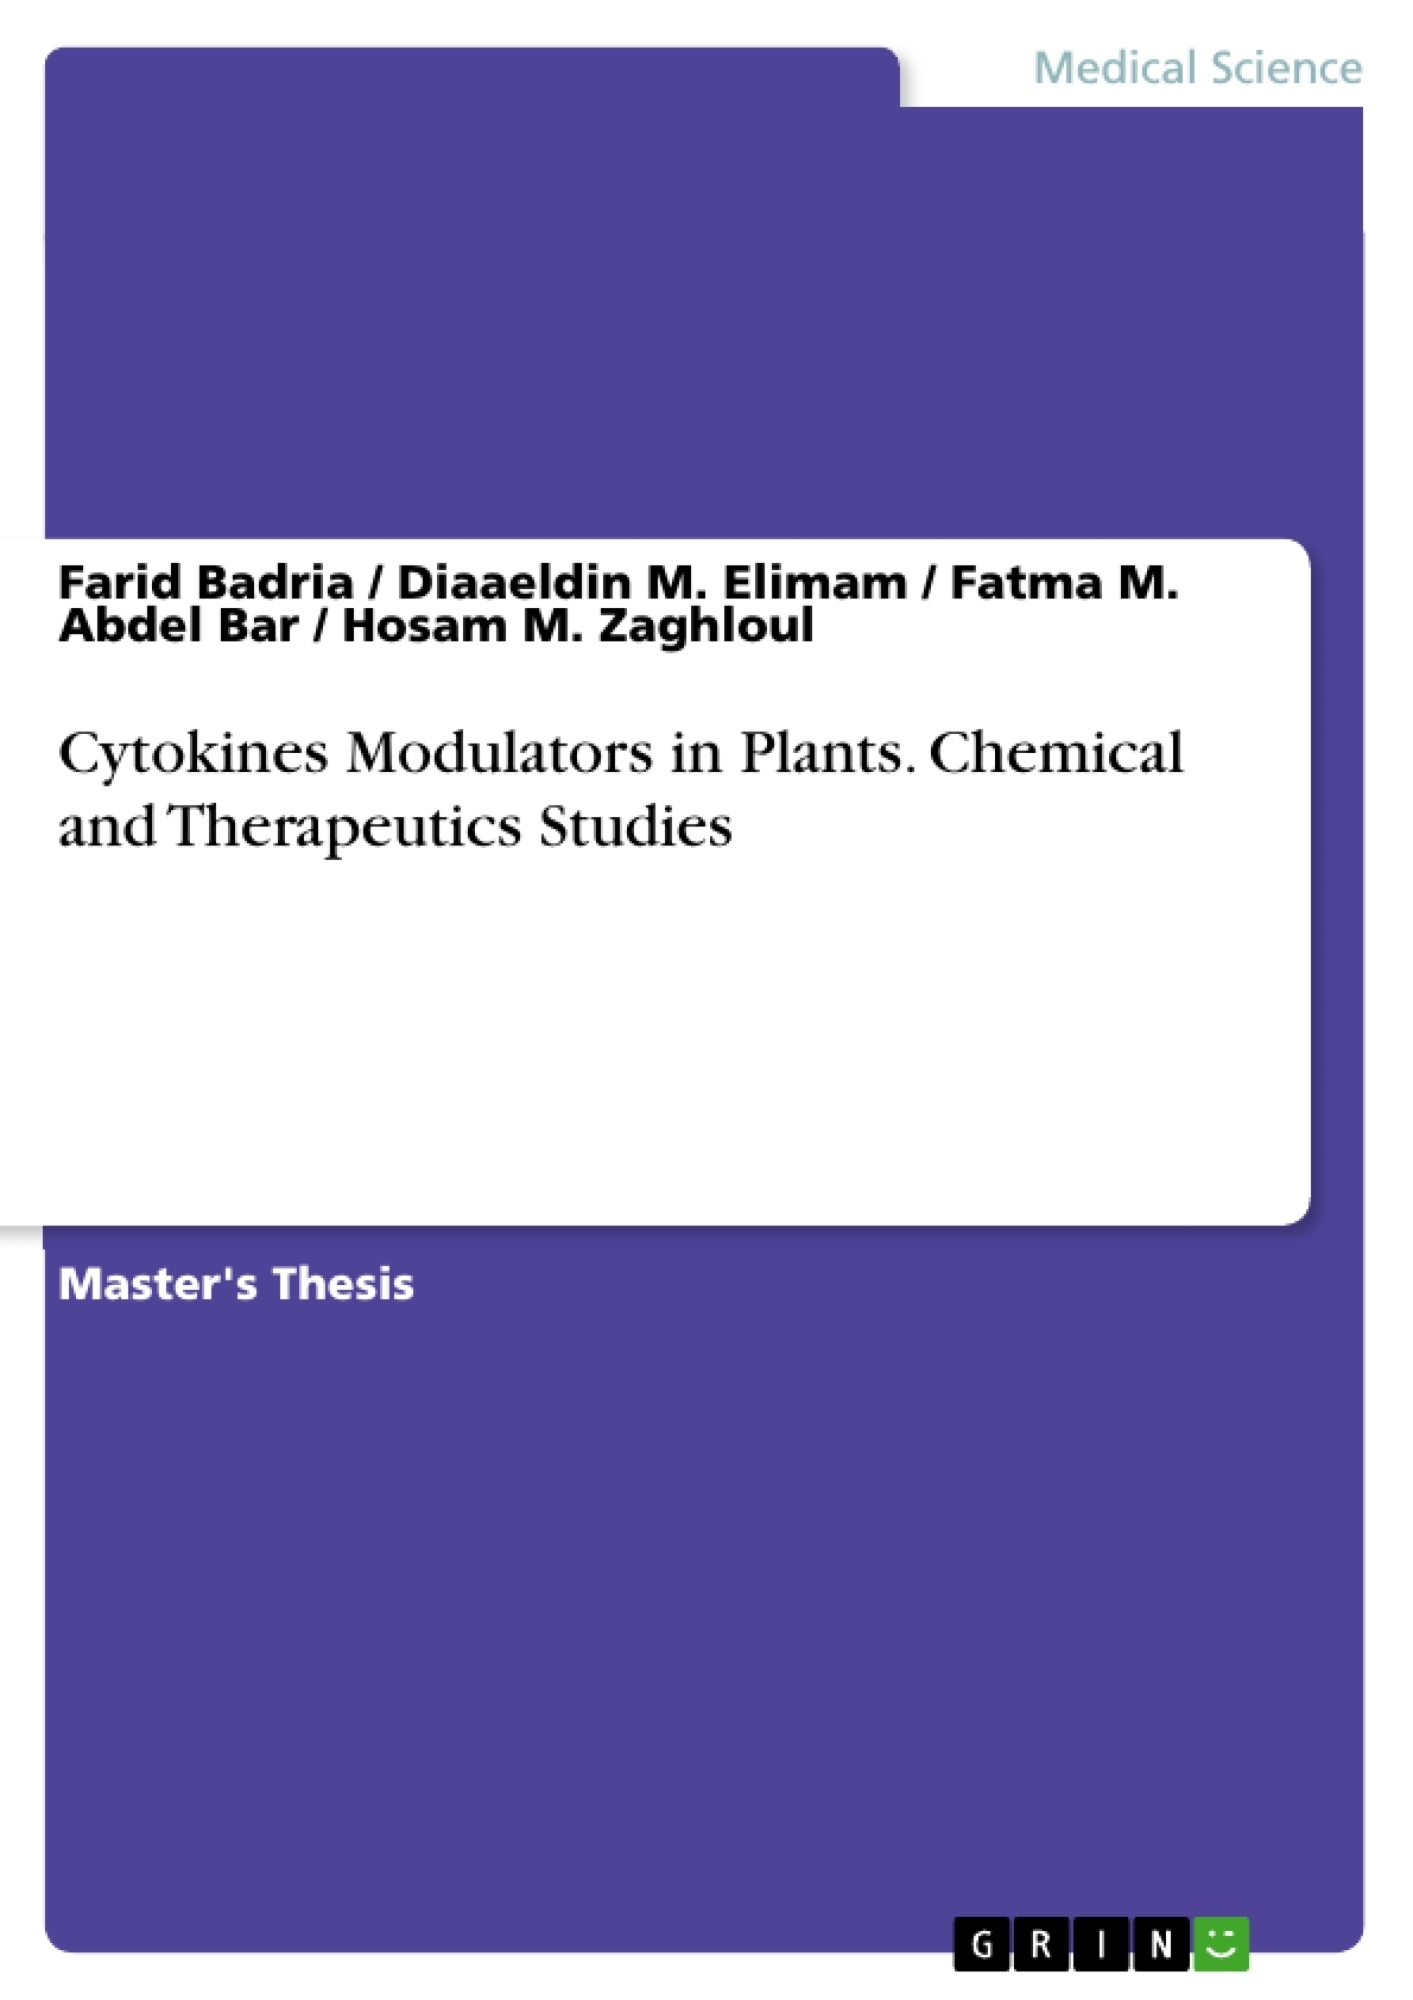 Title: Cytokines Modulators in Plants. Chemical and Therapeutics Studies